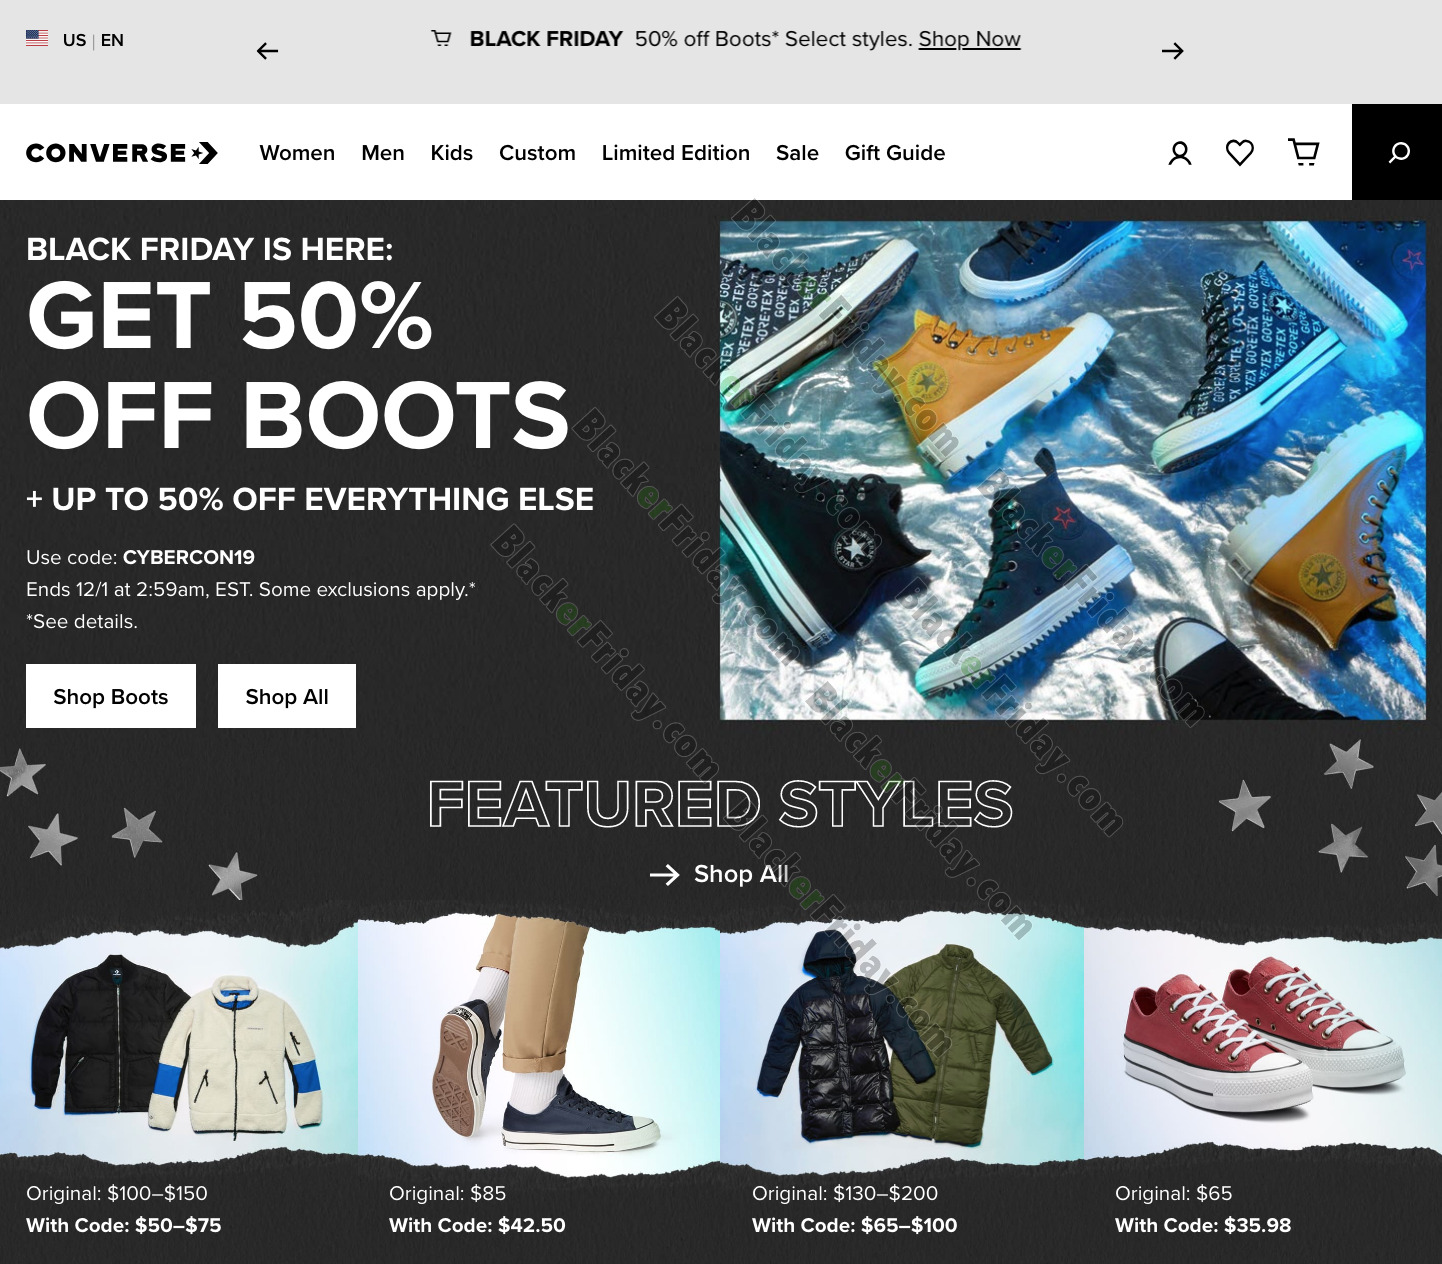 Converse Black Friday 2020 Sale - What